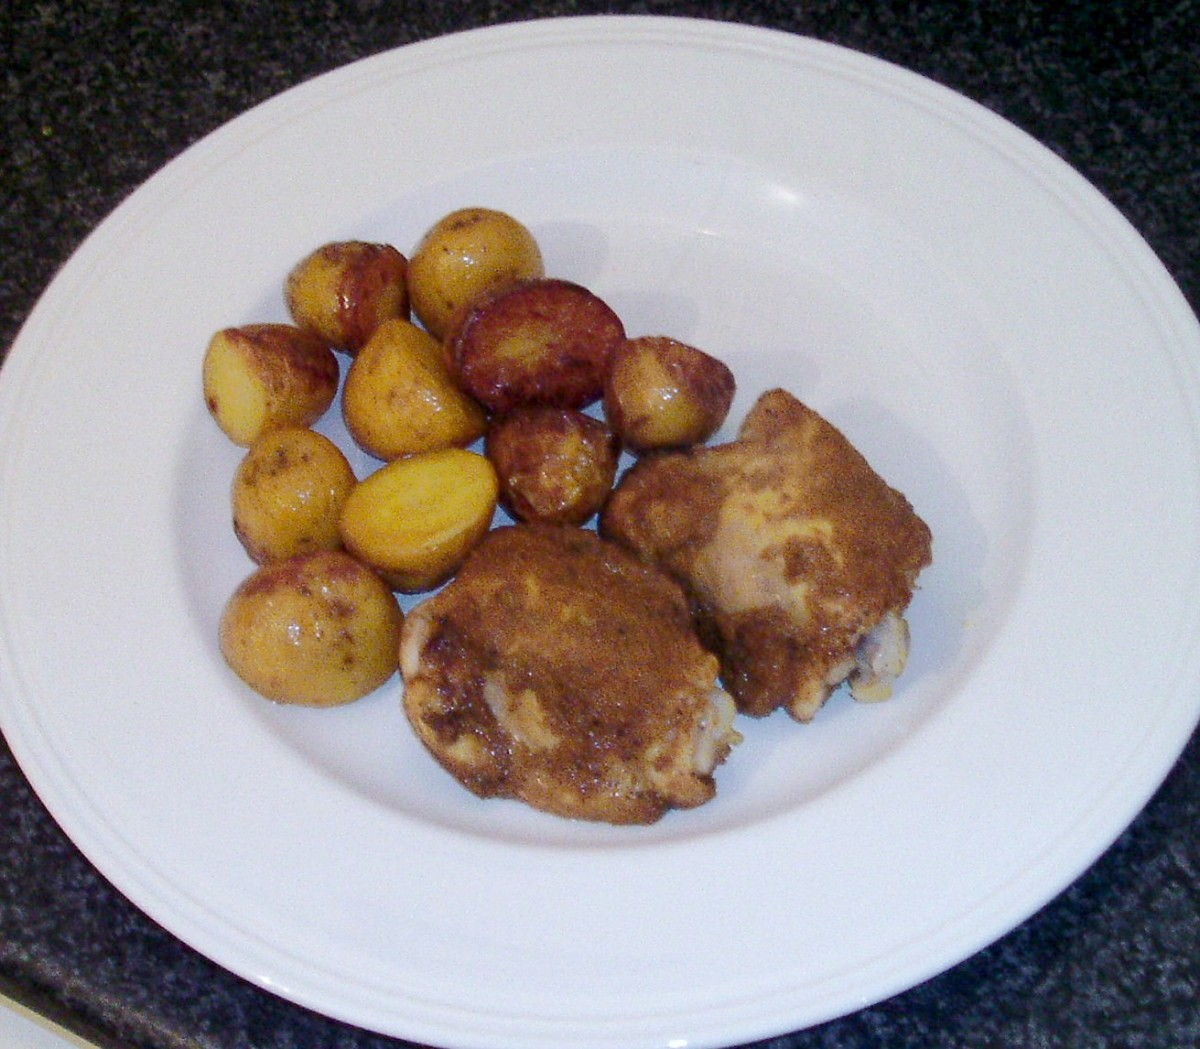 Plated chicken thighs and roast potatoes